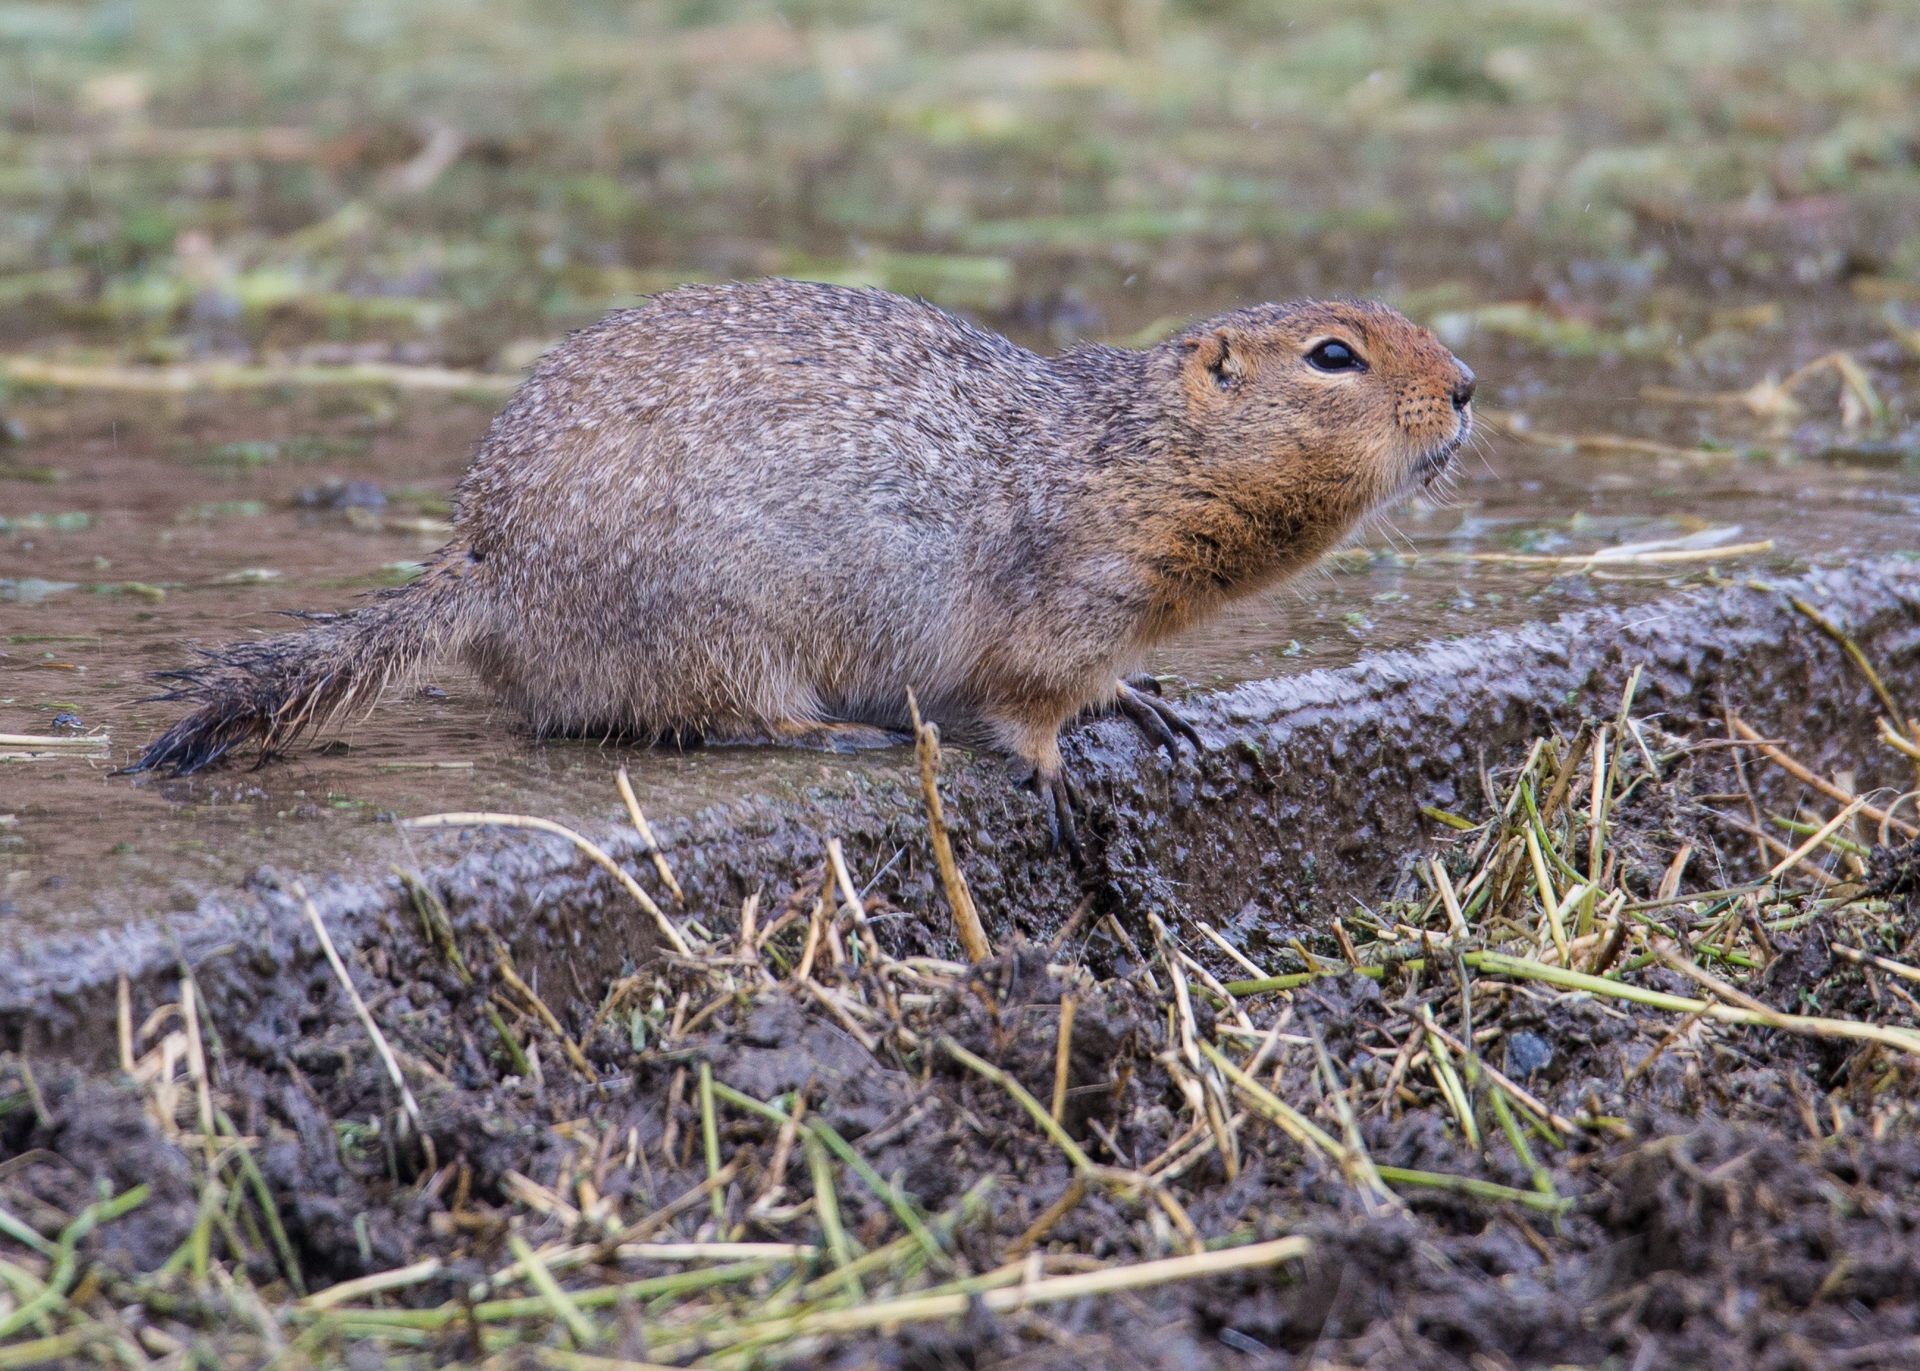 Even the ground squirrels were making themselves at home.